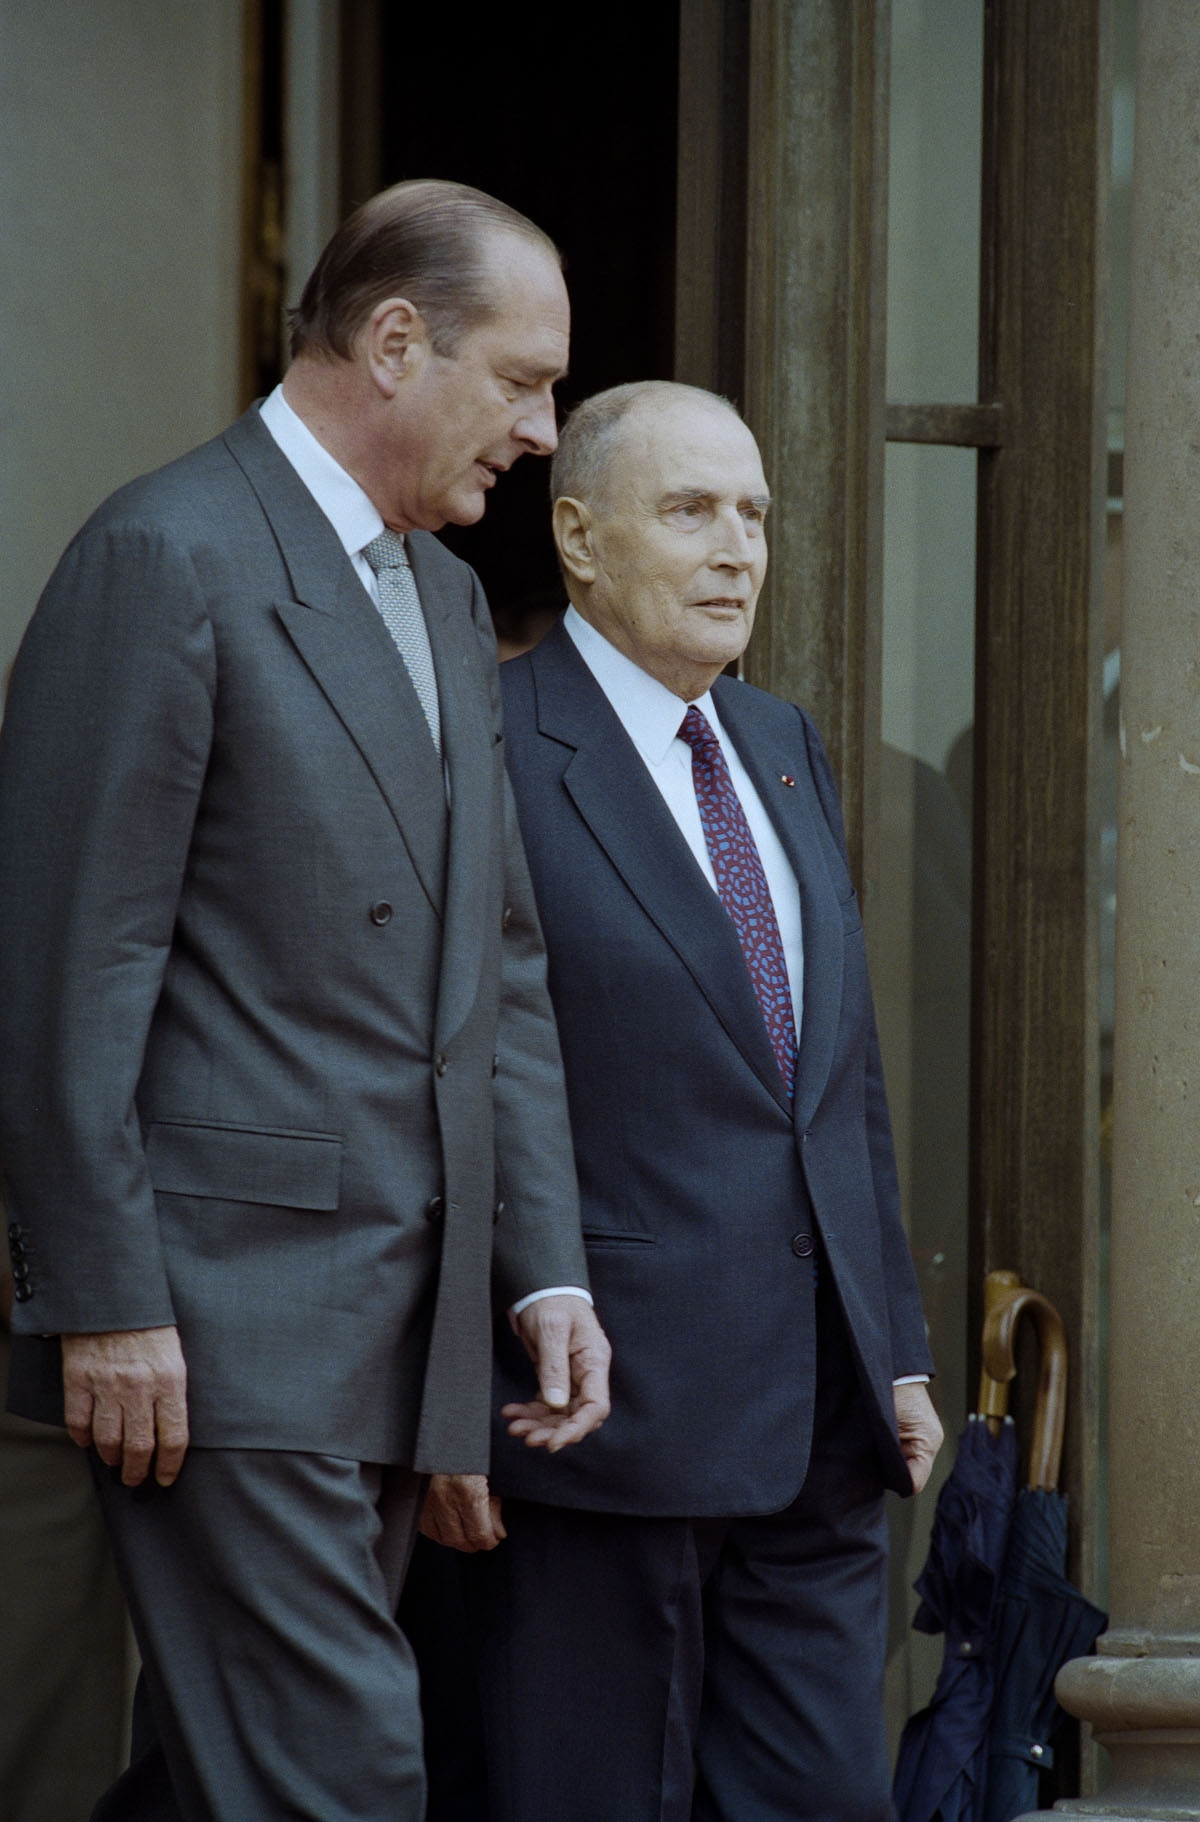 . France's President-elect Jacques Chirac (L) goes with his predecessor François Mitterrand on the doorstep at the Elysee Palace during the formal handover of power ceremony on May 17, 1995 in Paris.